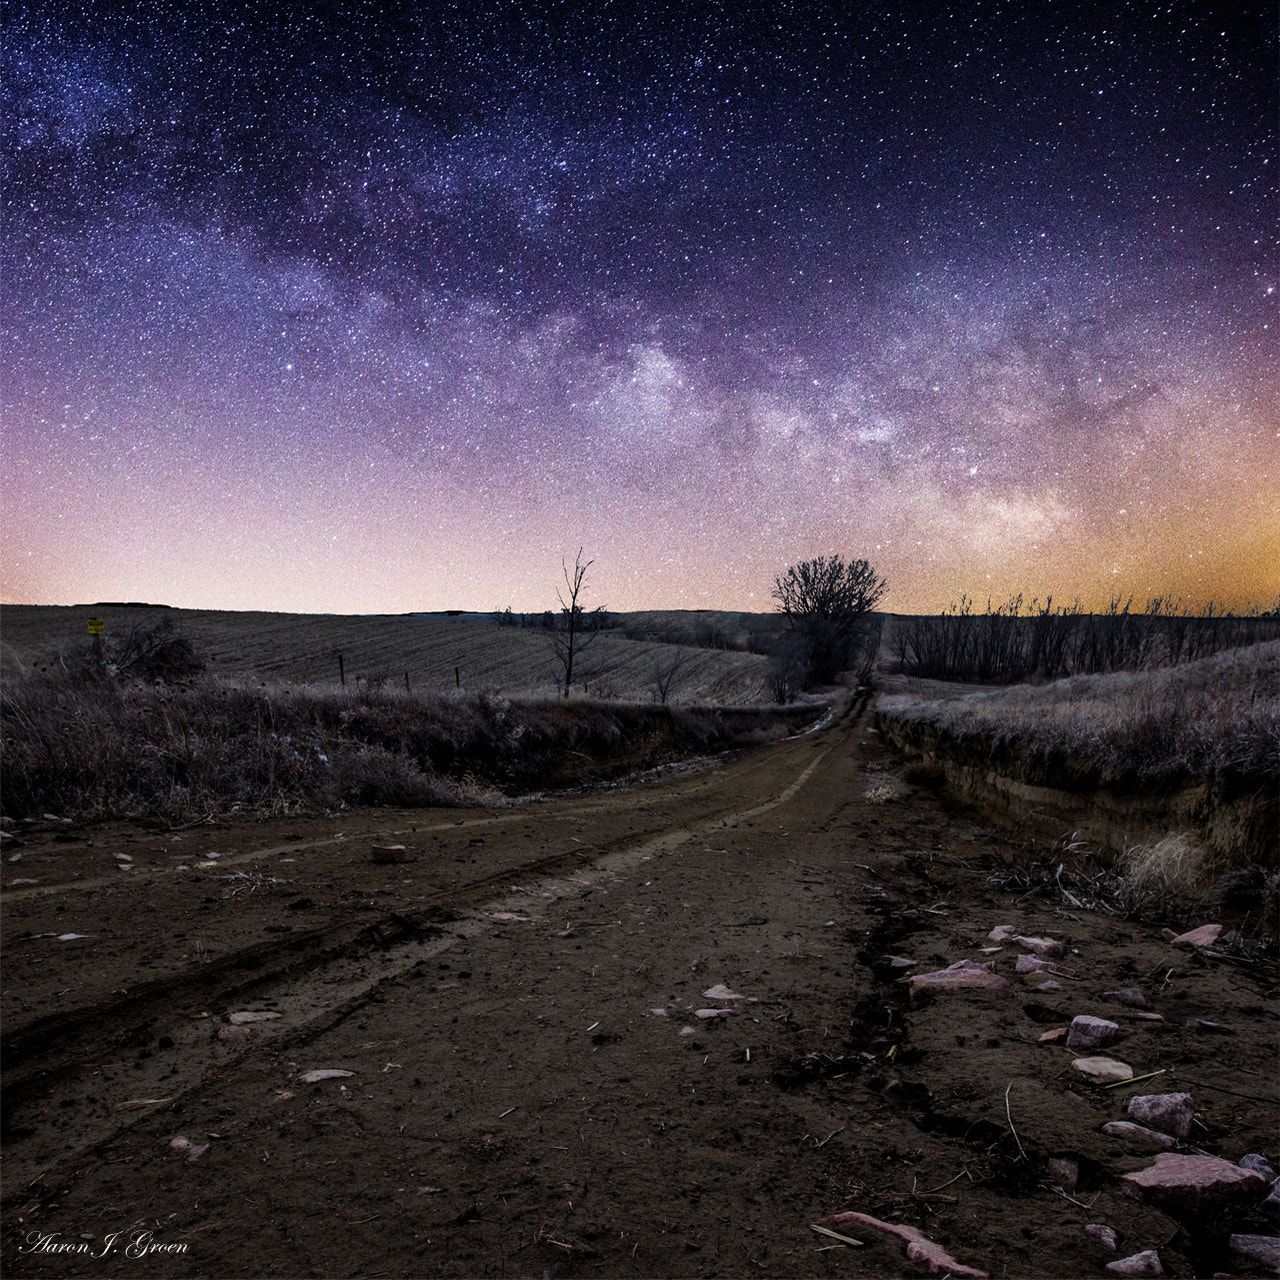 Photograph Night on a Dirt Road by Aaron J. Groen on 500px